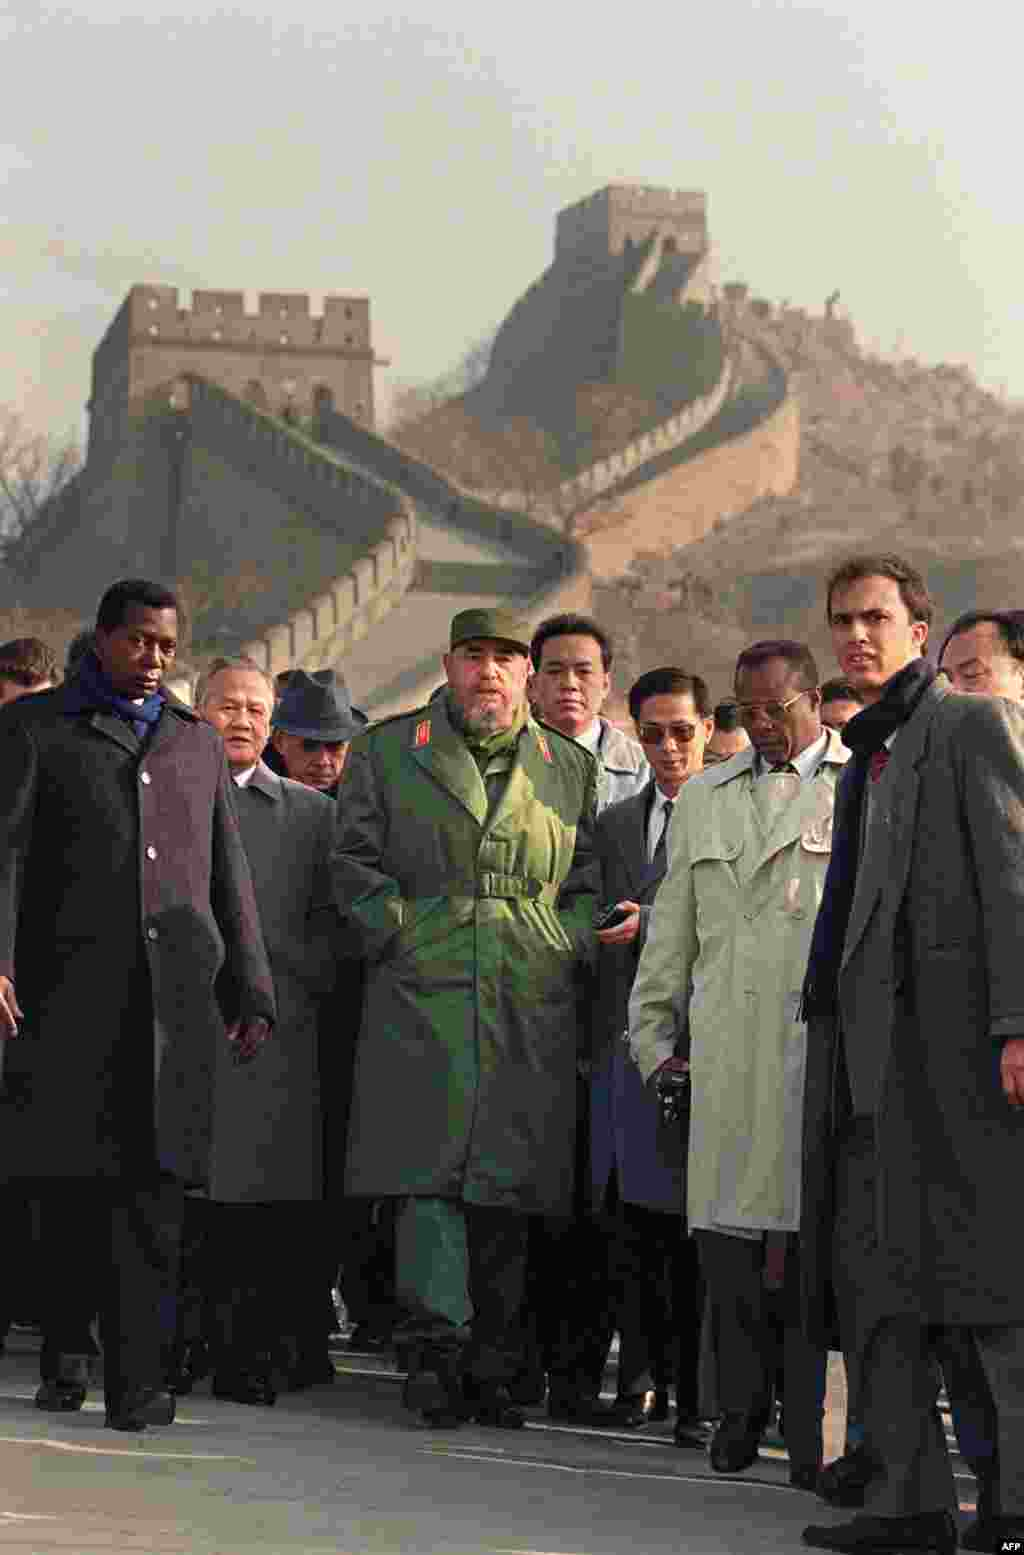 Fidel Castro (center) with guides and security agents at the Great Wall of China while on a state visit in December 1995.